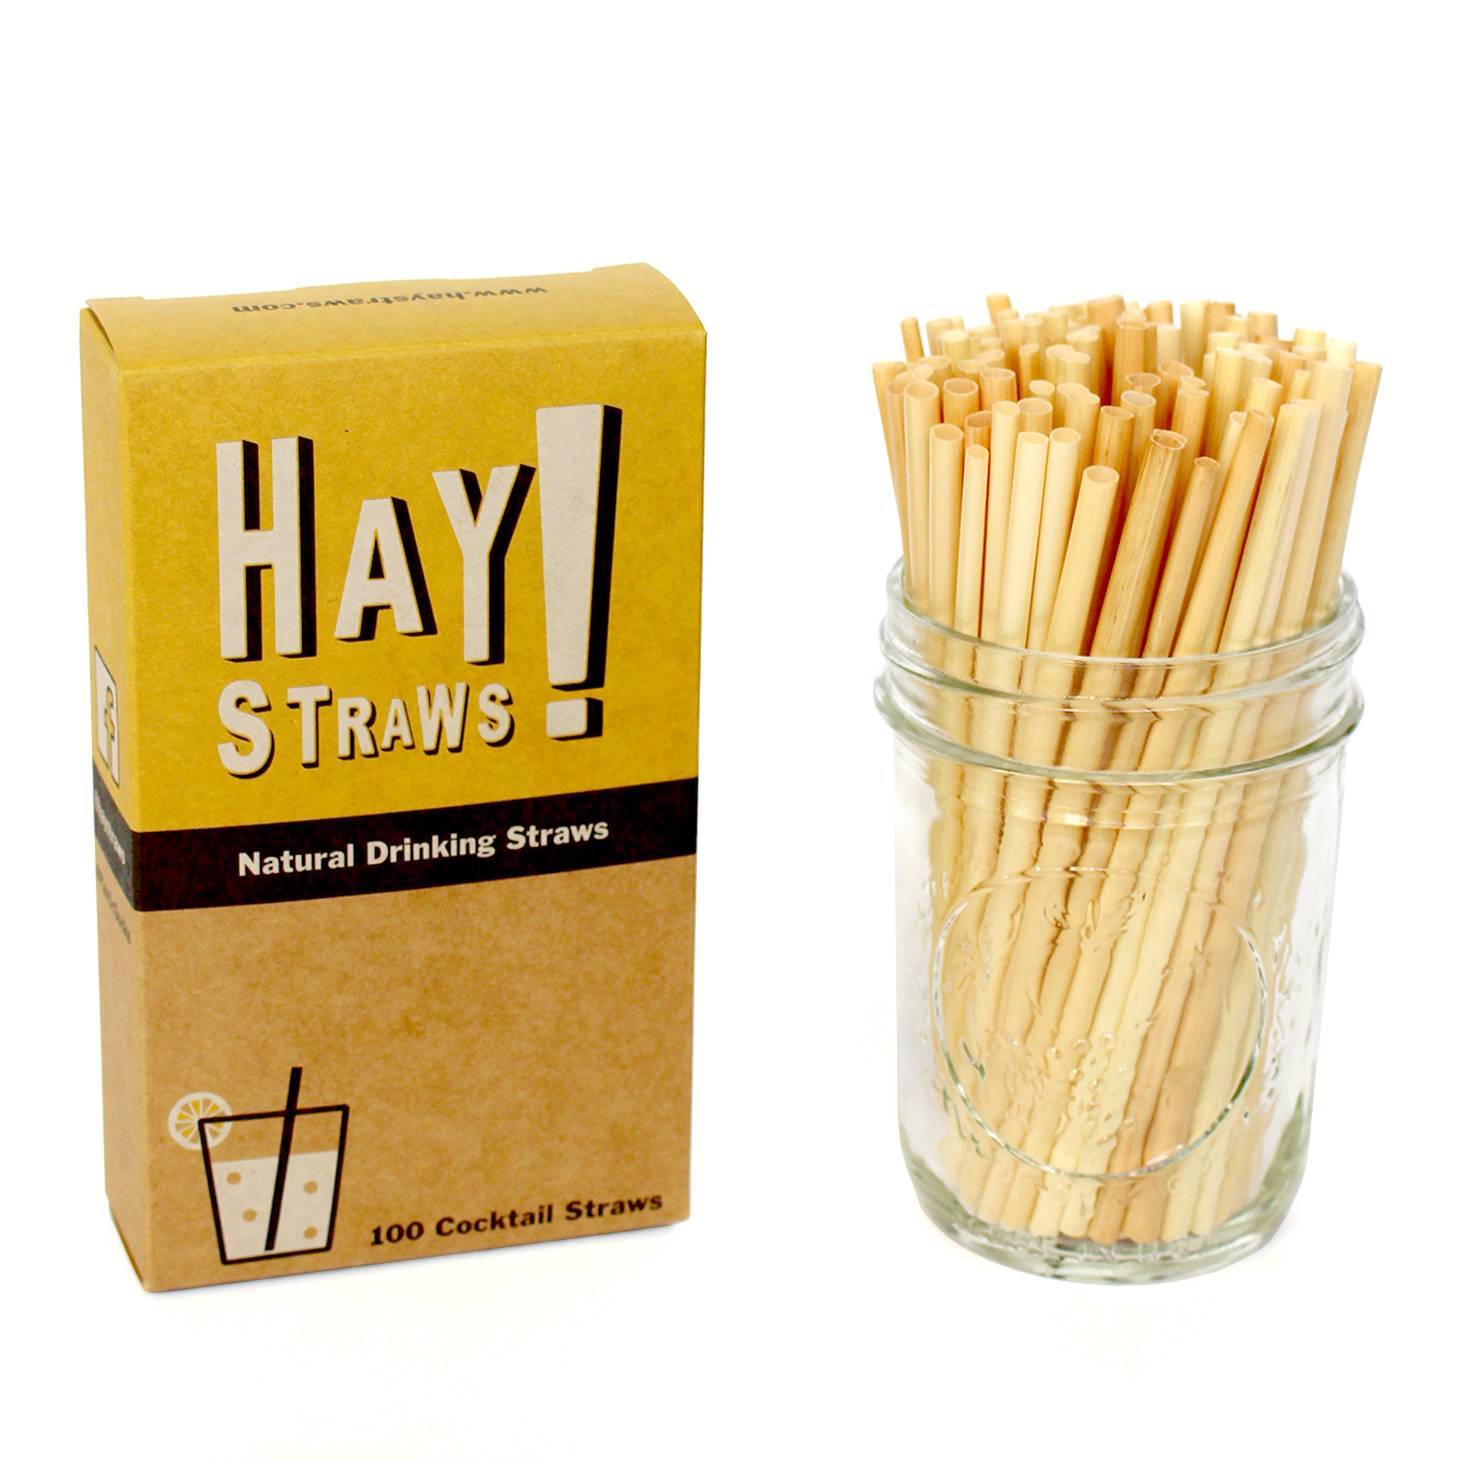 Cocktail straw, 100 pack